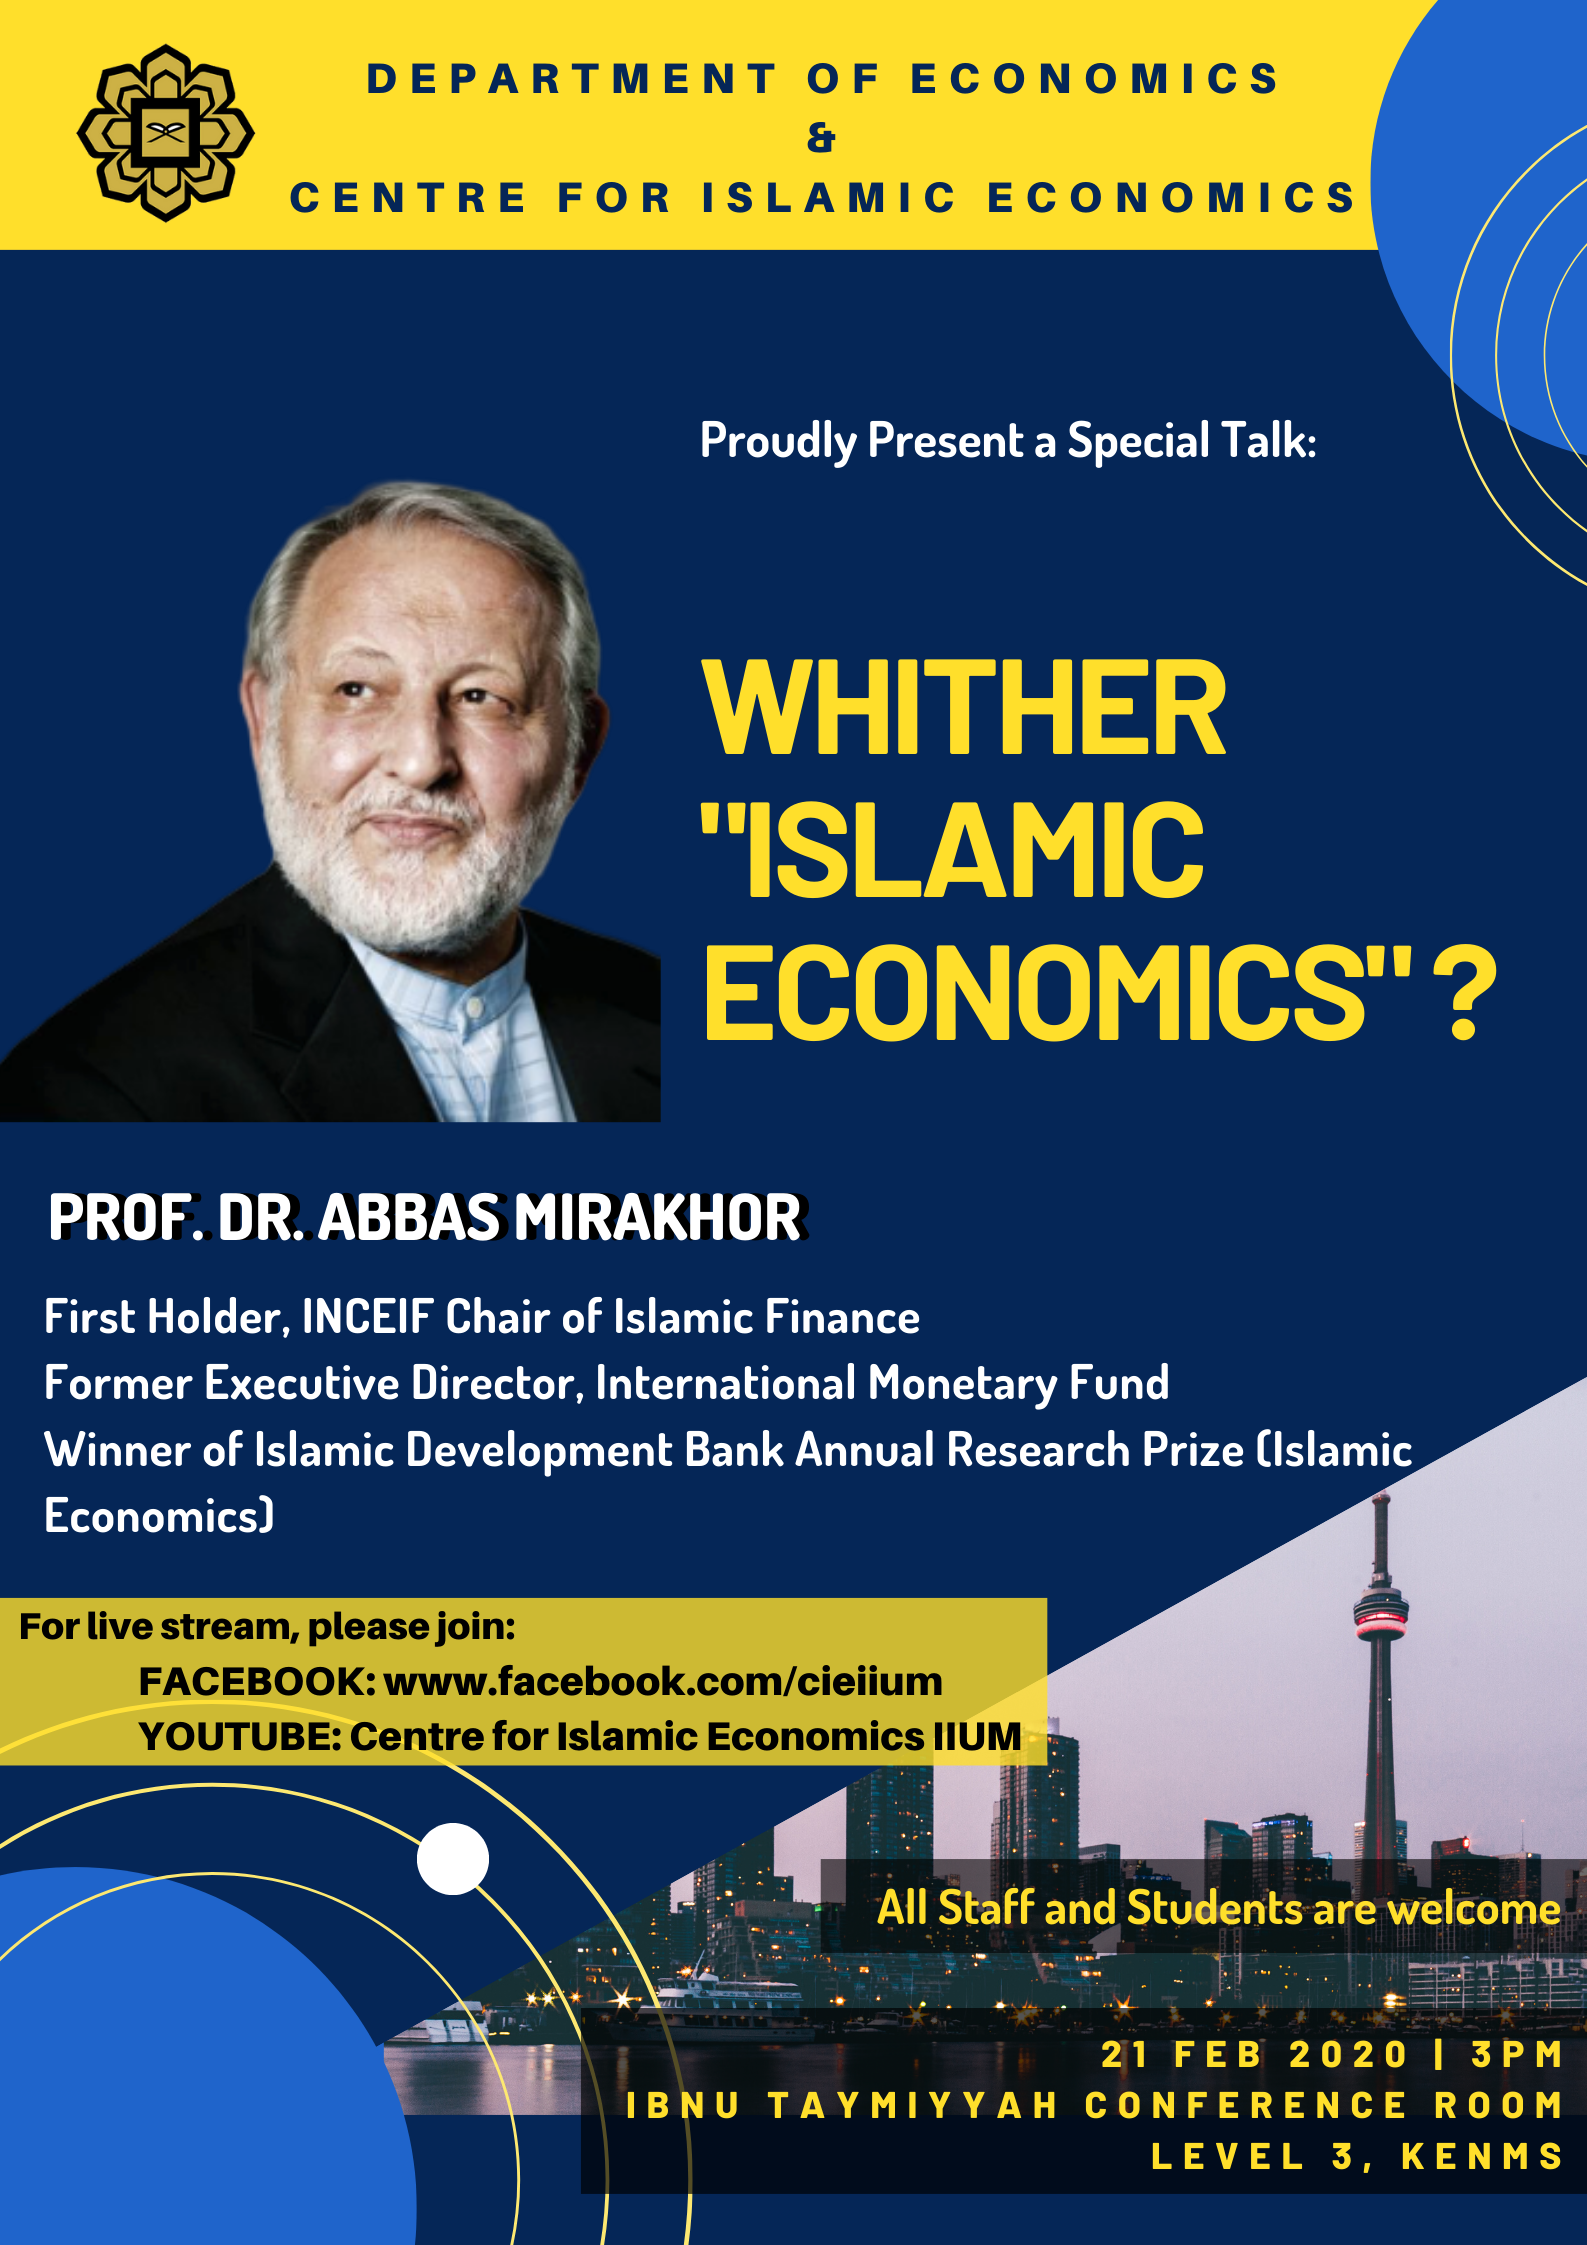 SPECIAL TALK BY PROF. DR. ABBAS MIRAKHOR